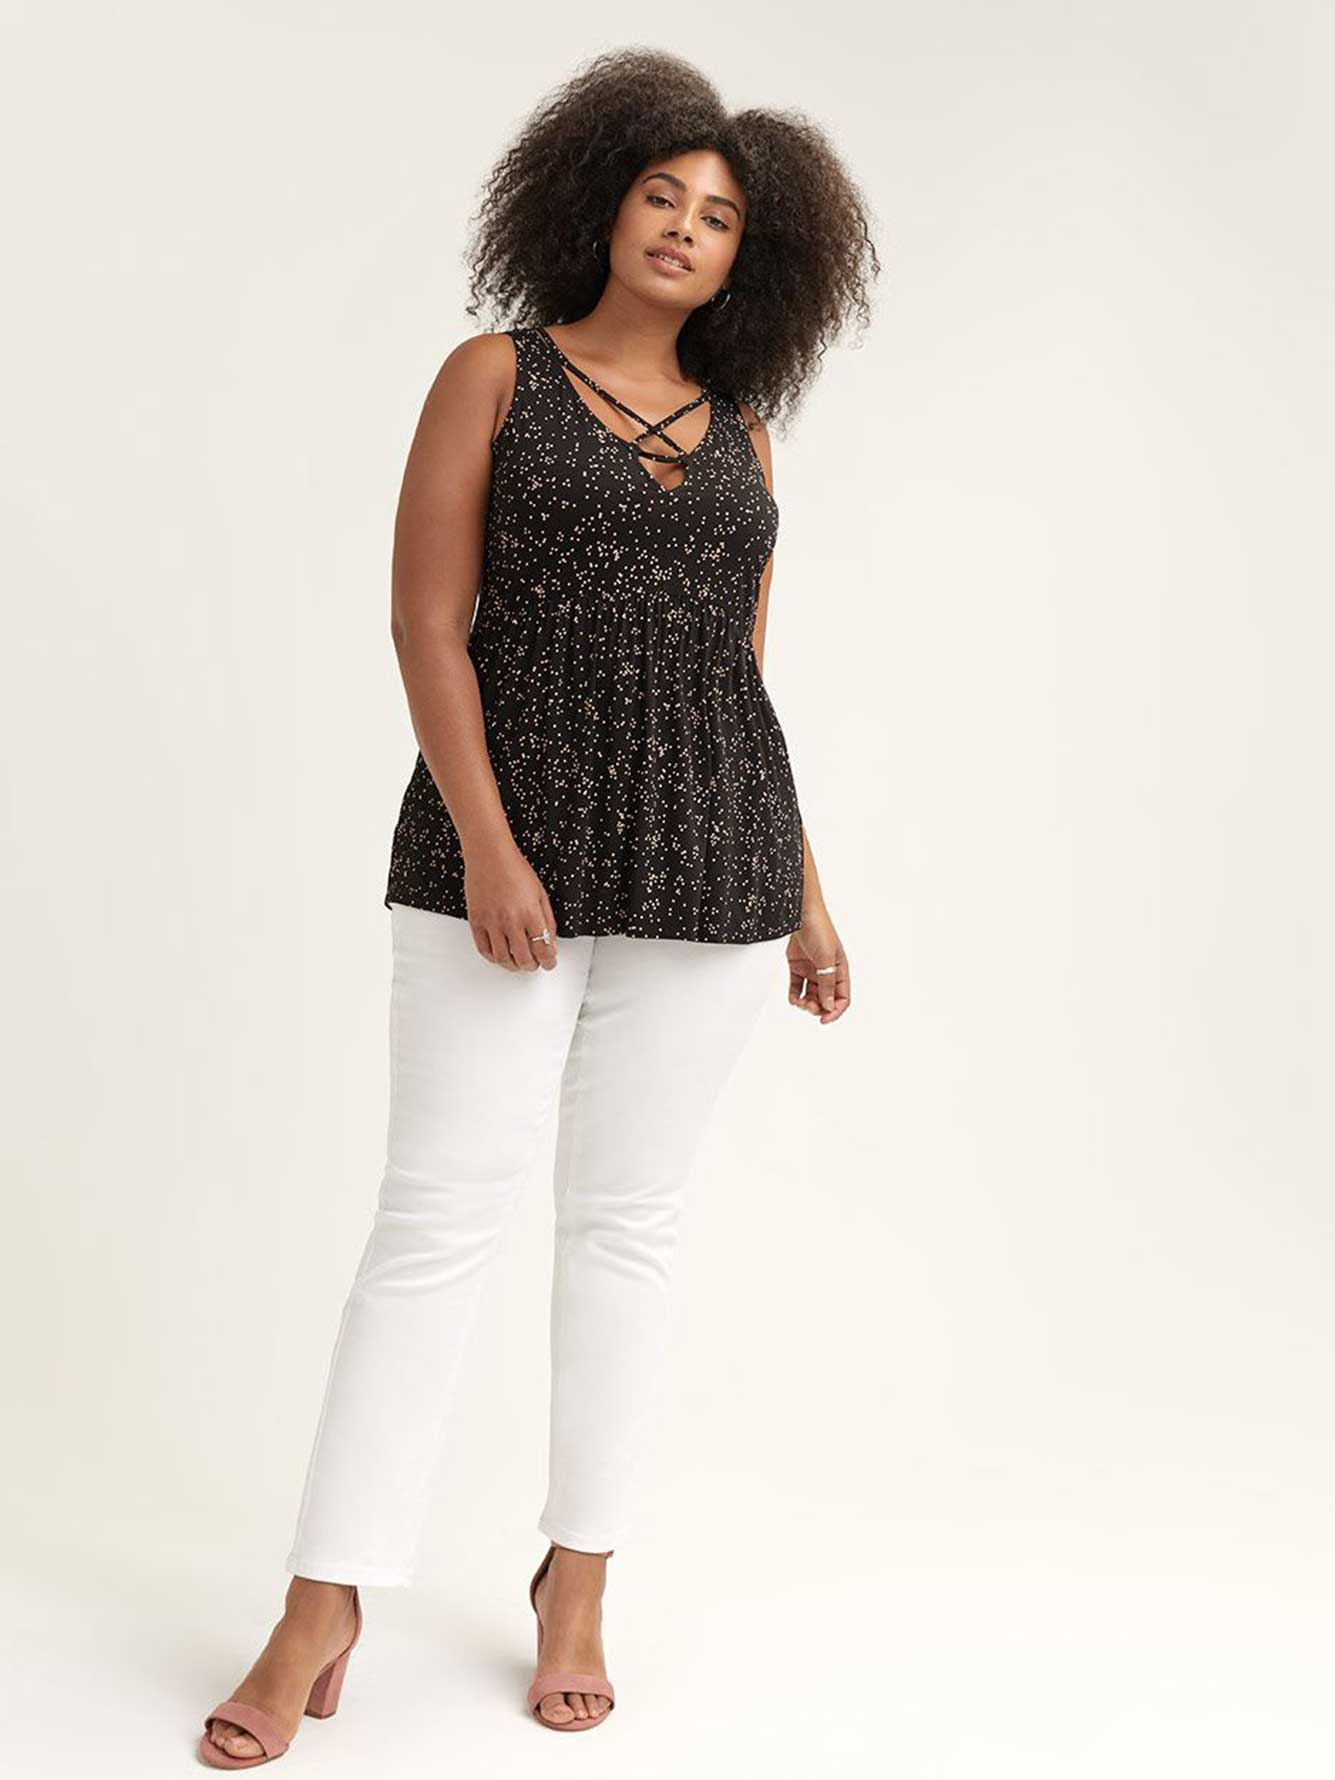 L&L Printed Sleeveless Top